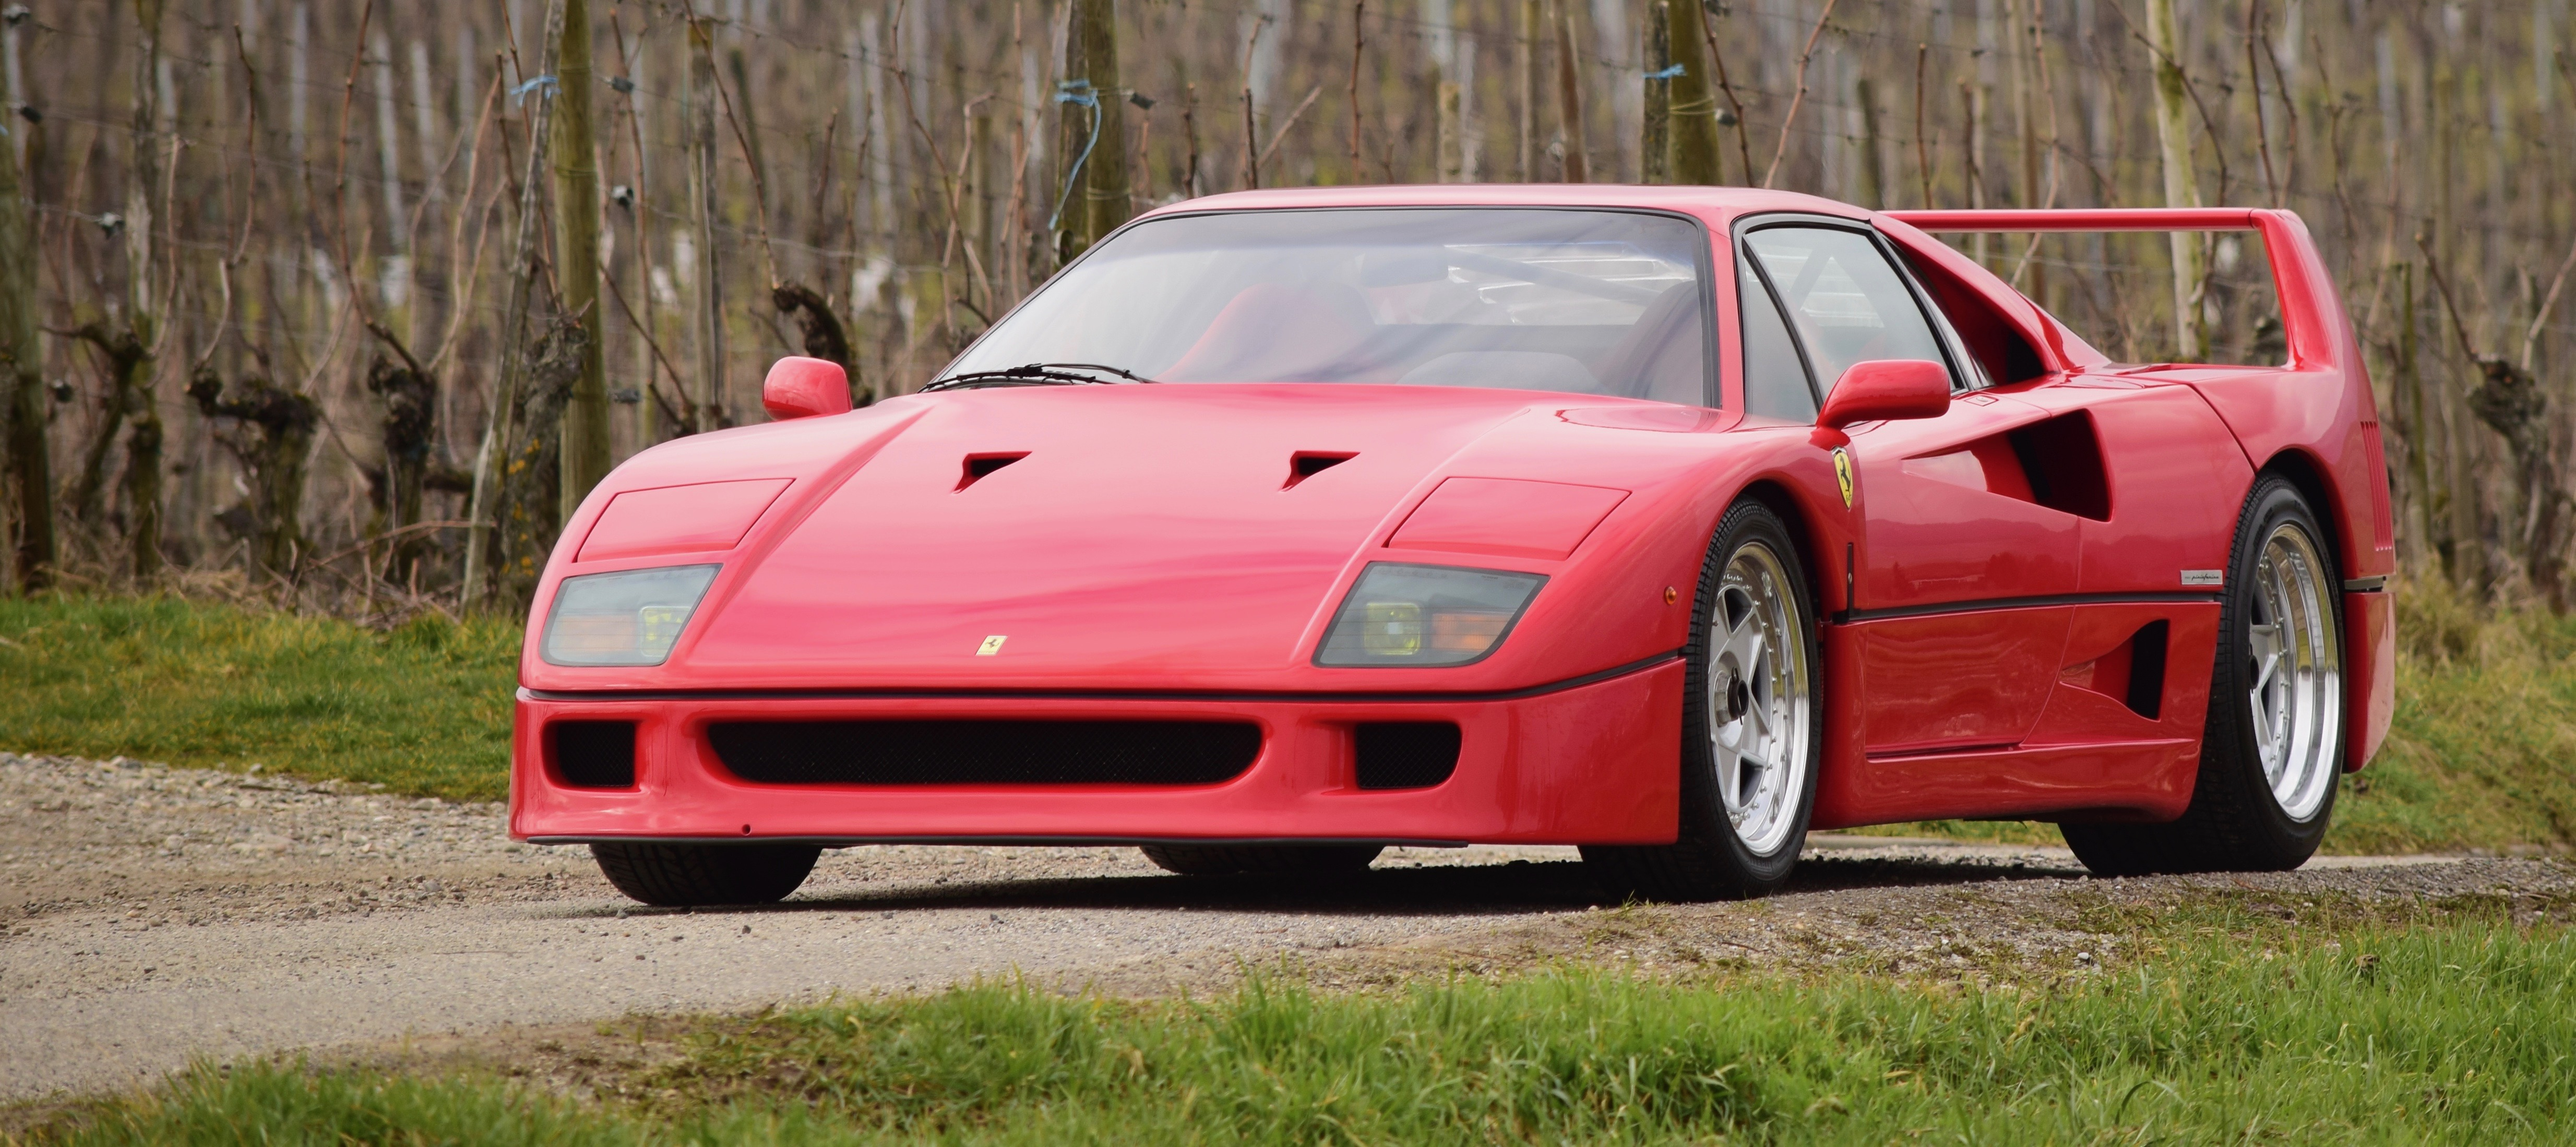 Champs, Artcurial offers 'firsts' for its Champs sale, ClassicCars.com Journal